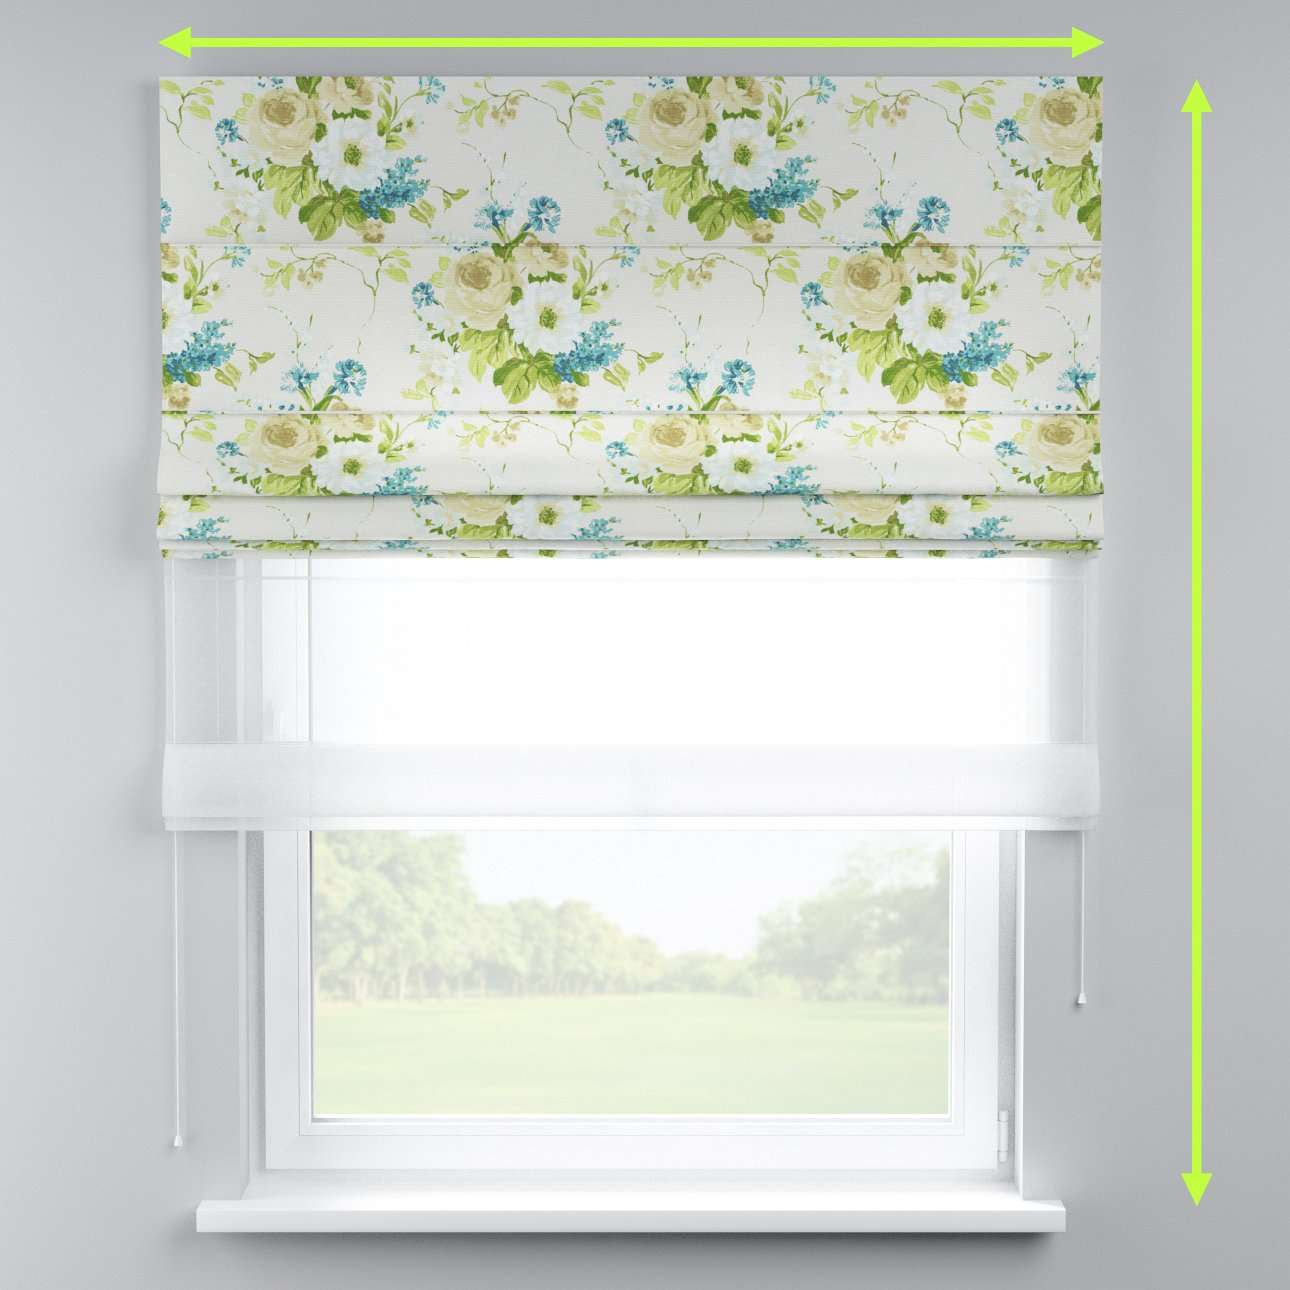 Voile and fabric roman blind (DUO II) in collection Mirella, fabric: 141-15